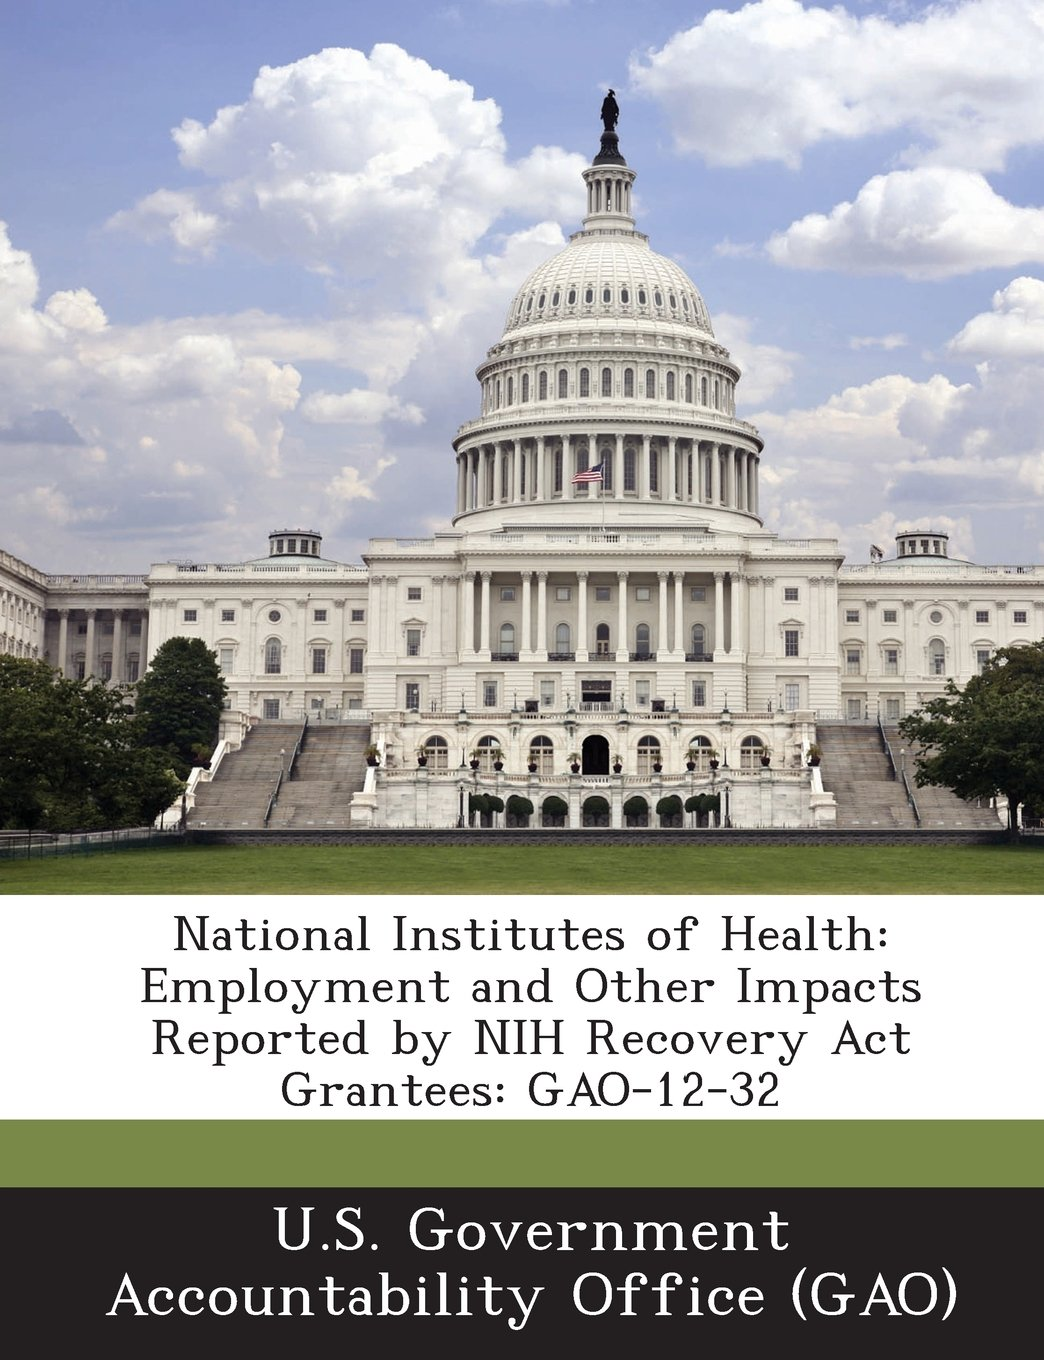 Read Online National Institutes of Health: Employment and Other Impacts Reported by Nih Recovery ACT Grantees: Gao-12-32 PDF